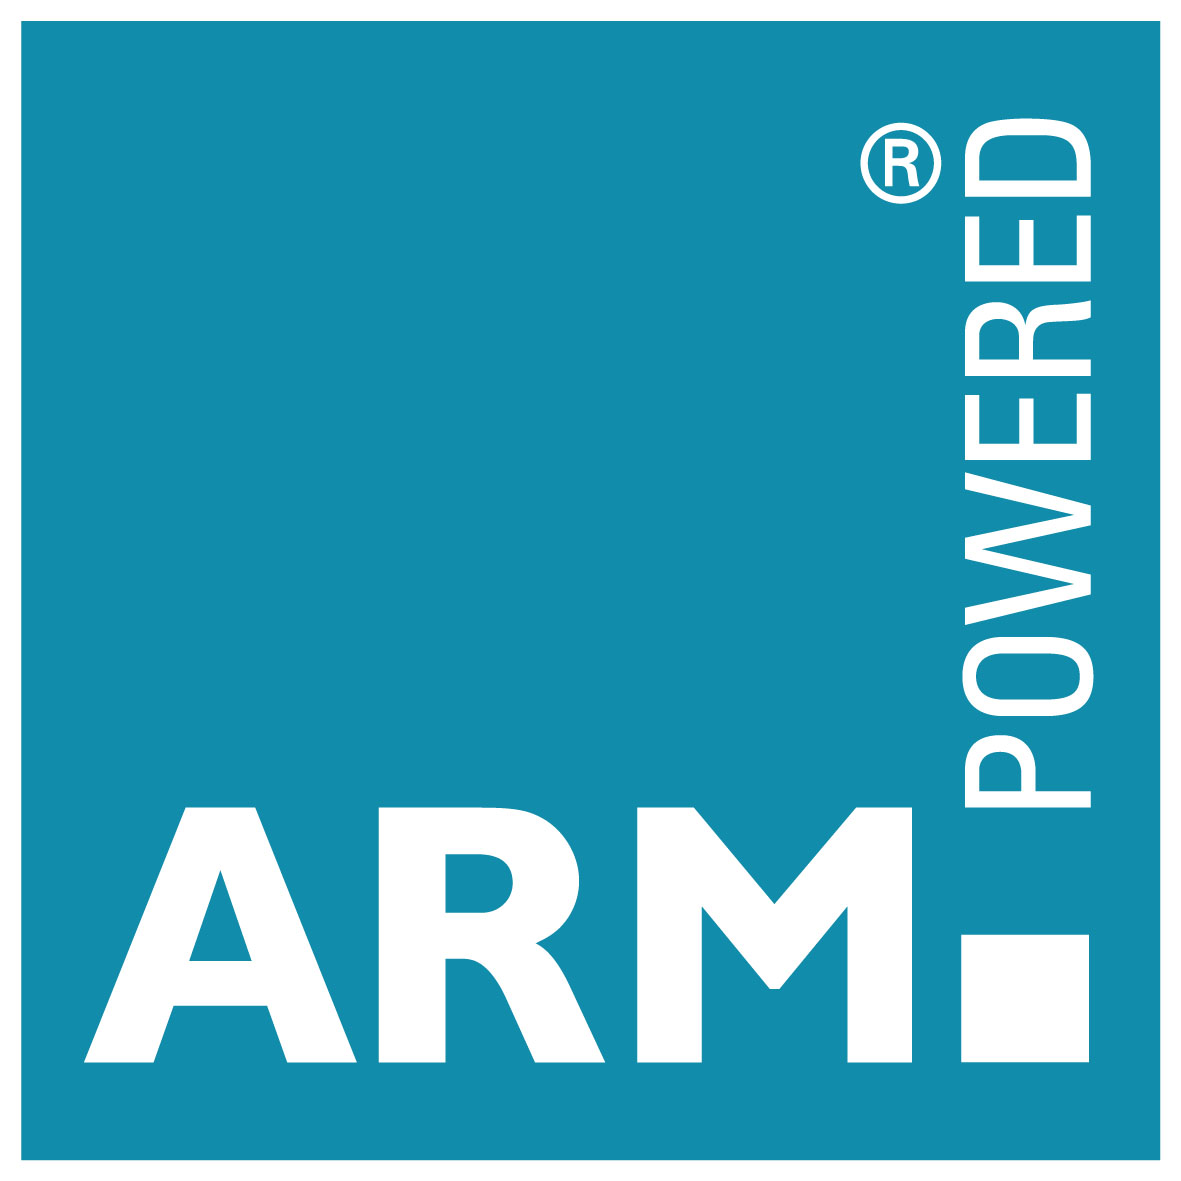 ARM-powered